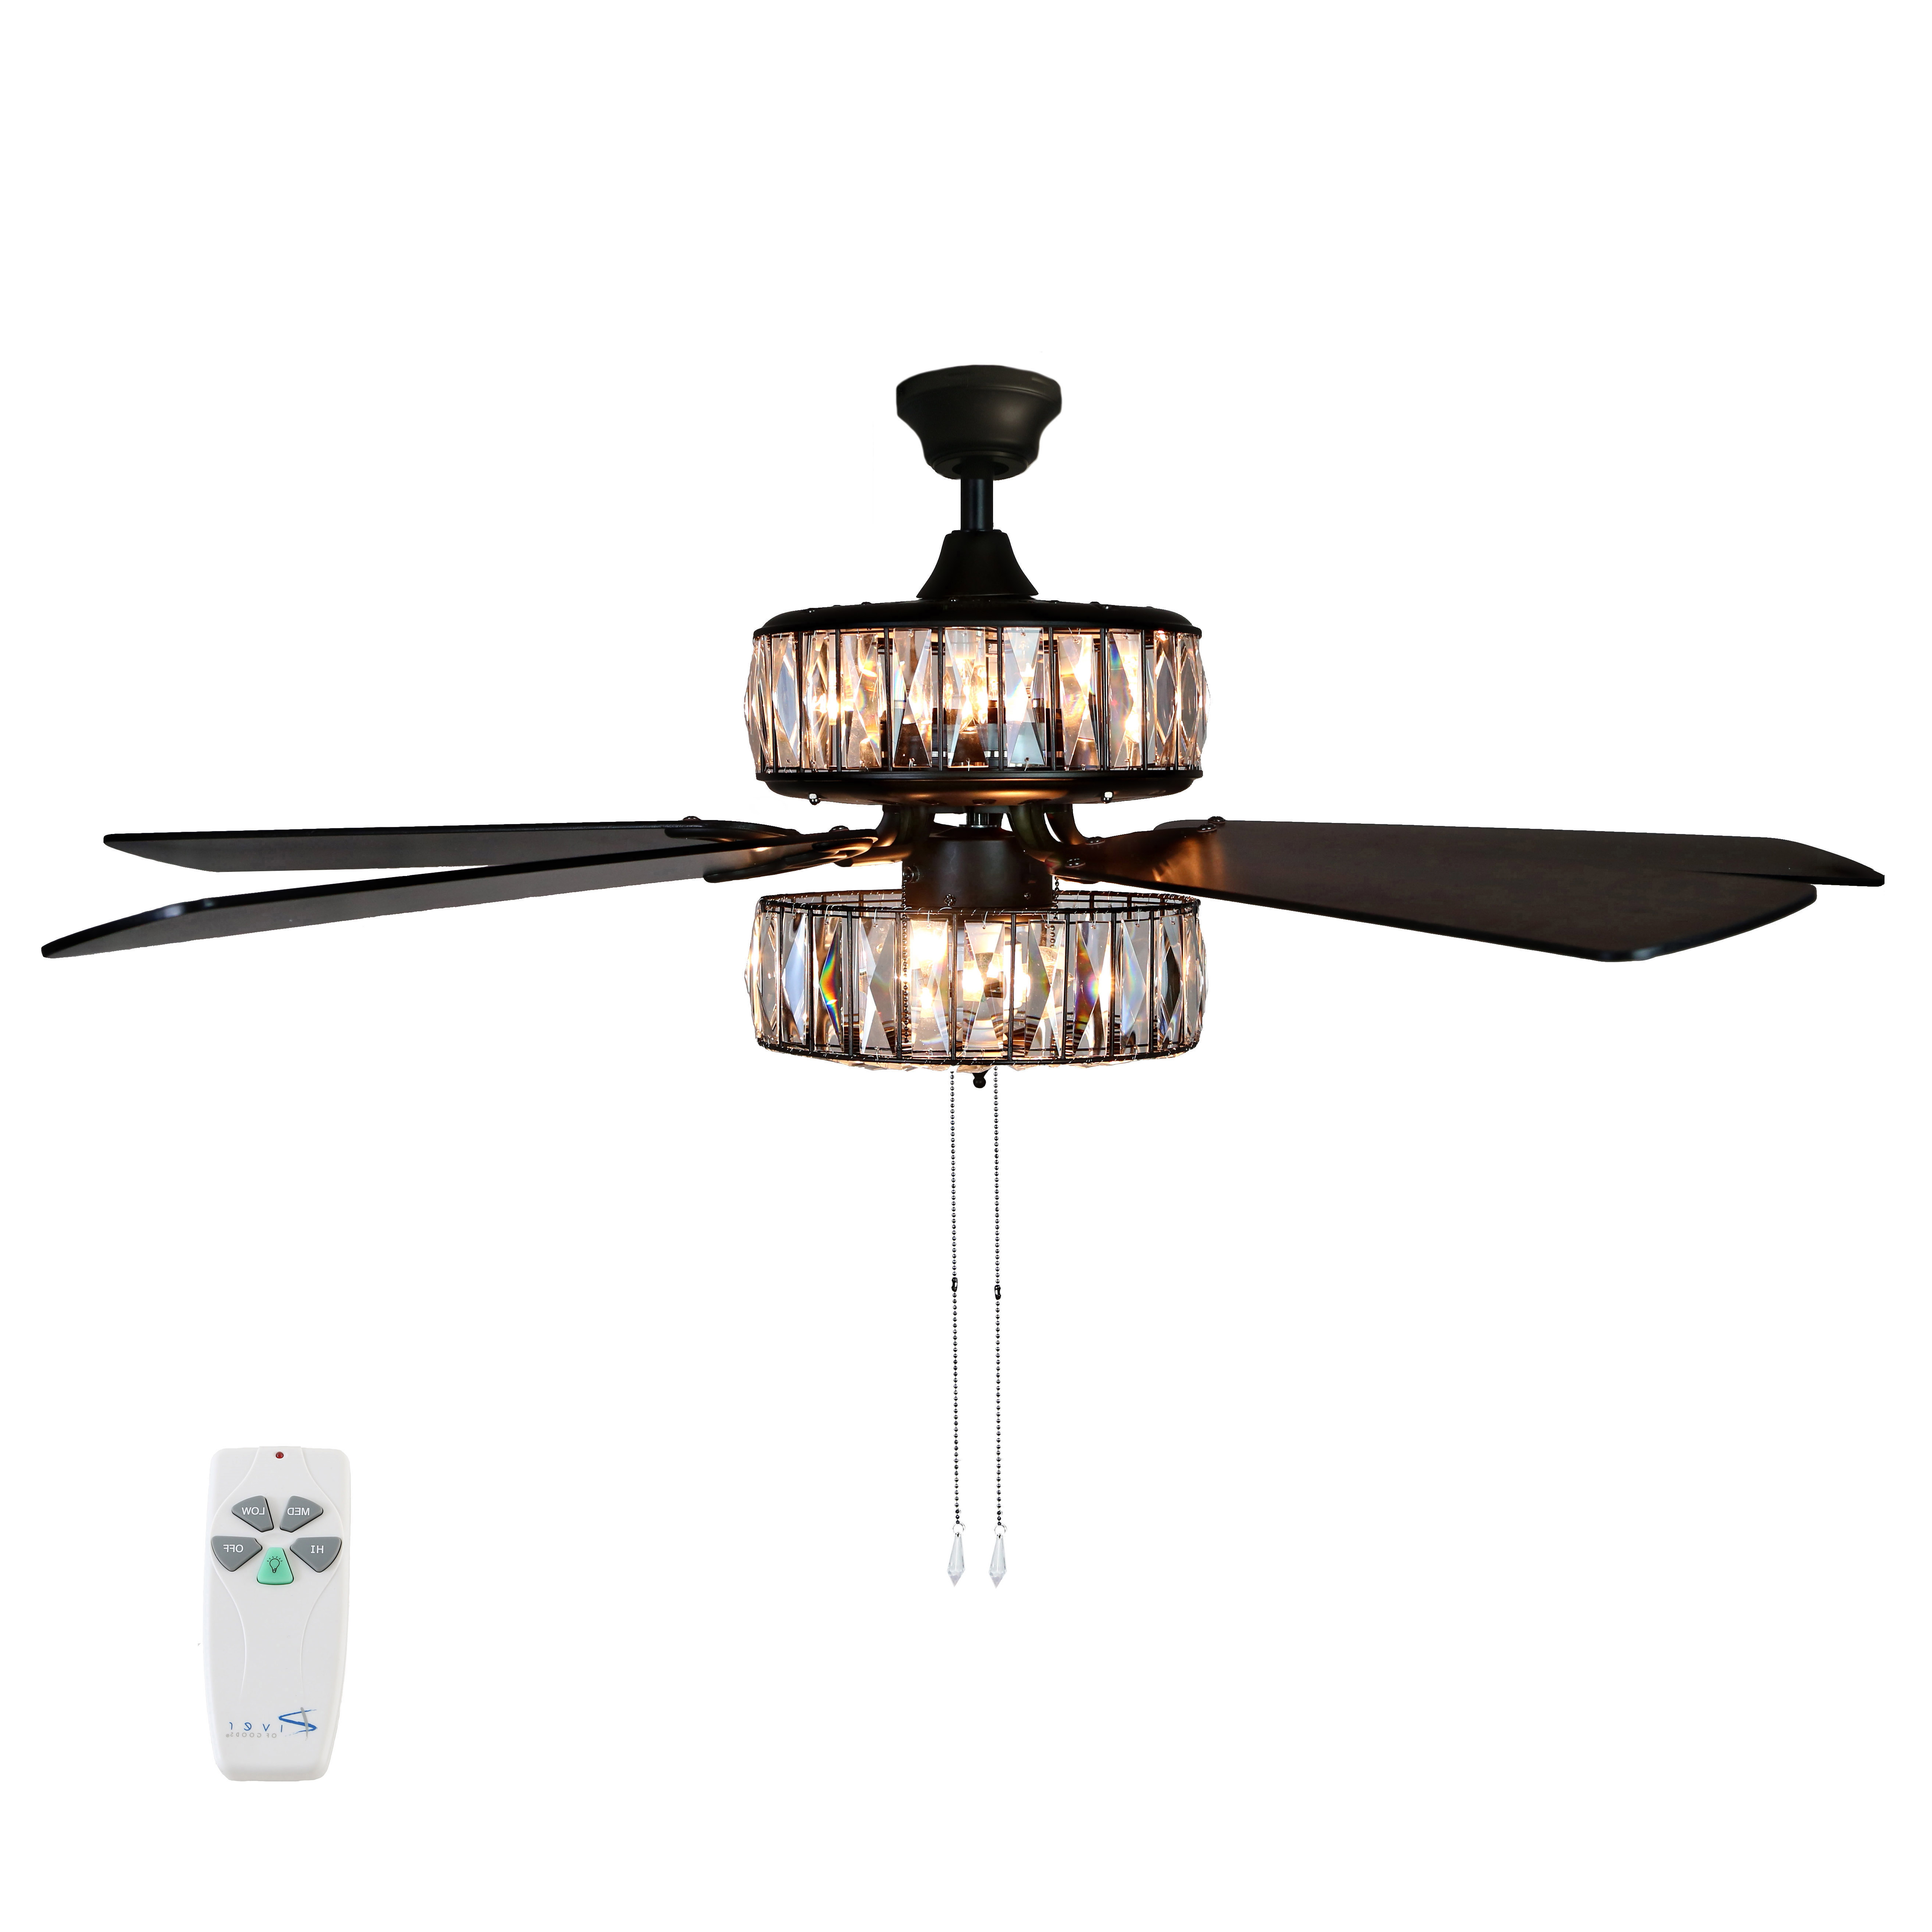 """Njie Caged Crystal 5 Blade Ceiling Fans Inside Latest River Of Goods 52""""w Caged Crystal 5 Blade Ceiling Fan With Remote (View 17 of 20)"""